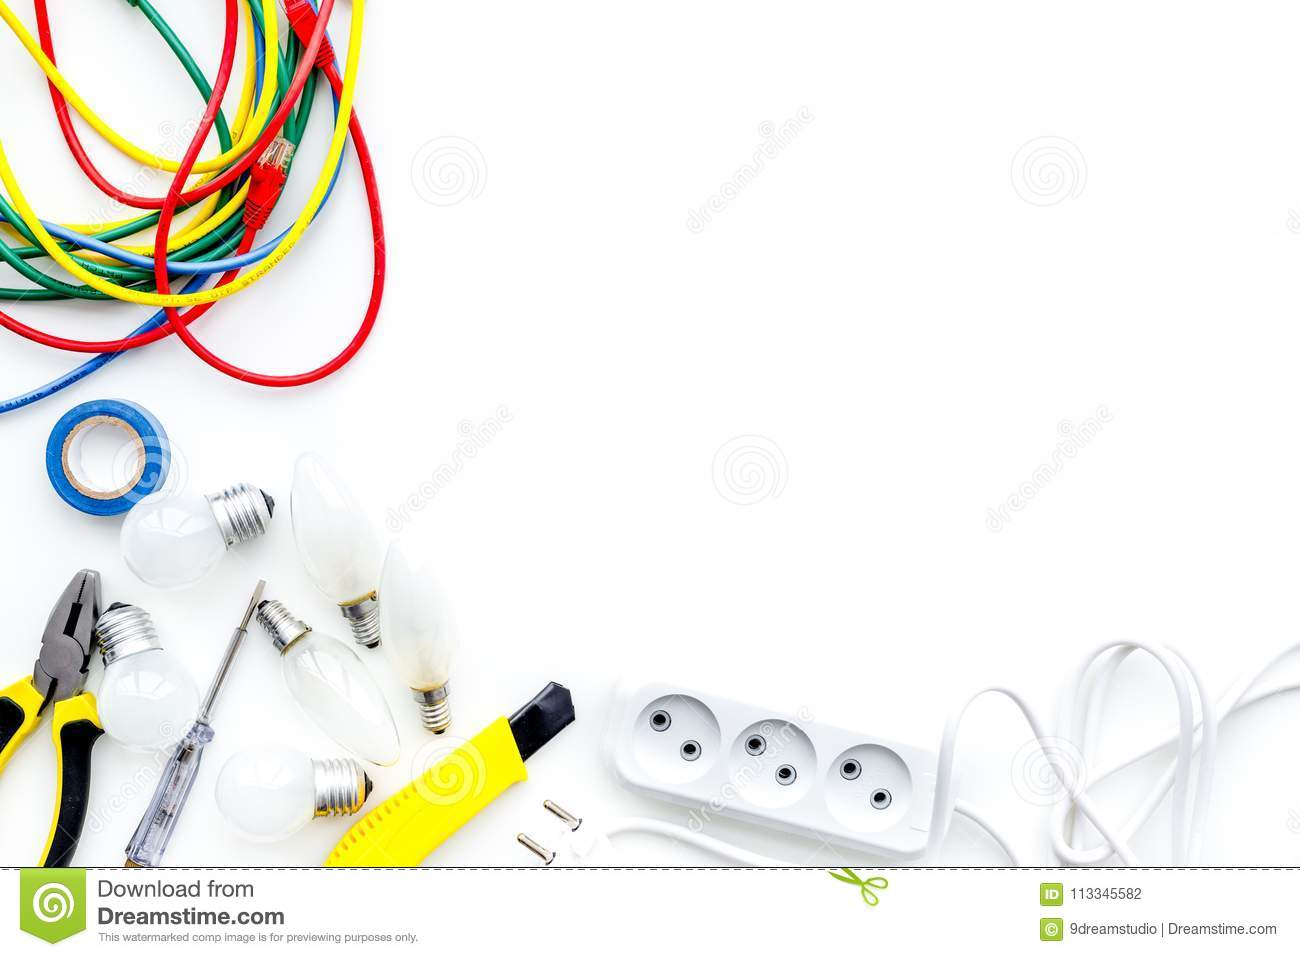 Electrical Installation Wiring Works Tools Cabel And Socket Outlet On White Background Top View Copy Space Stock Photo Image Of Engineer Repairman 113345582